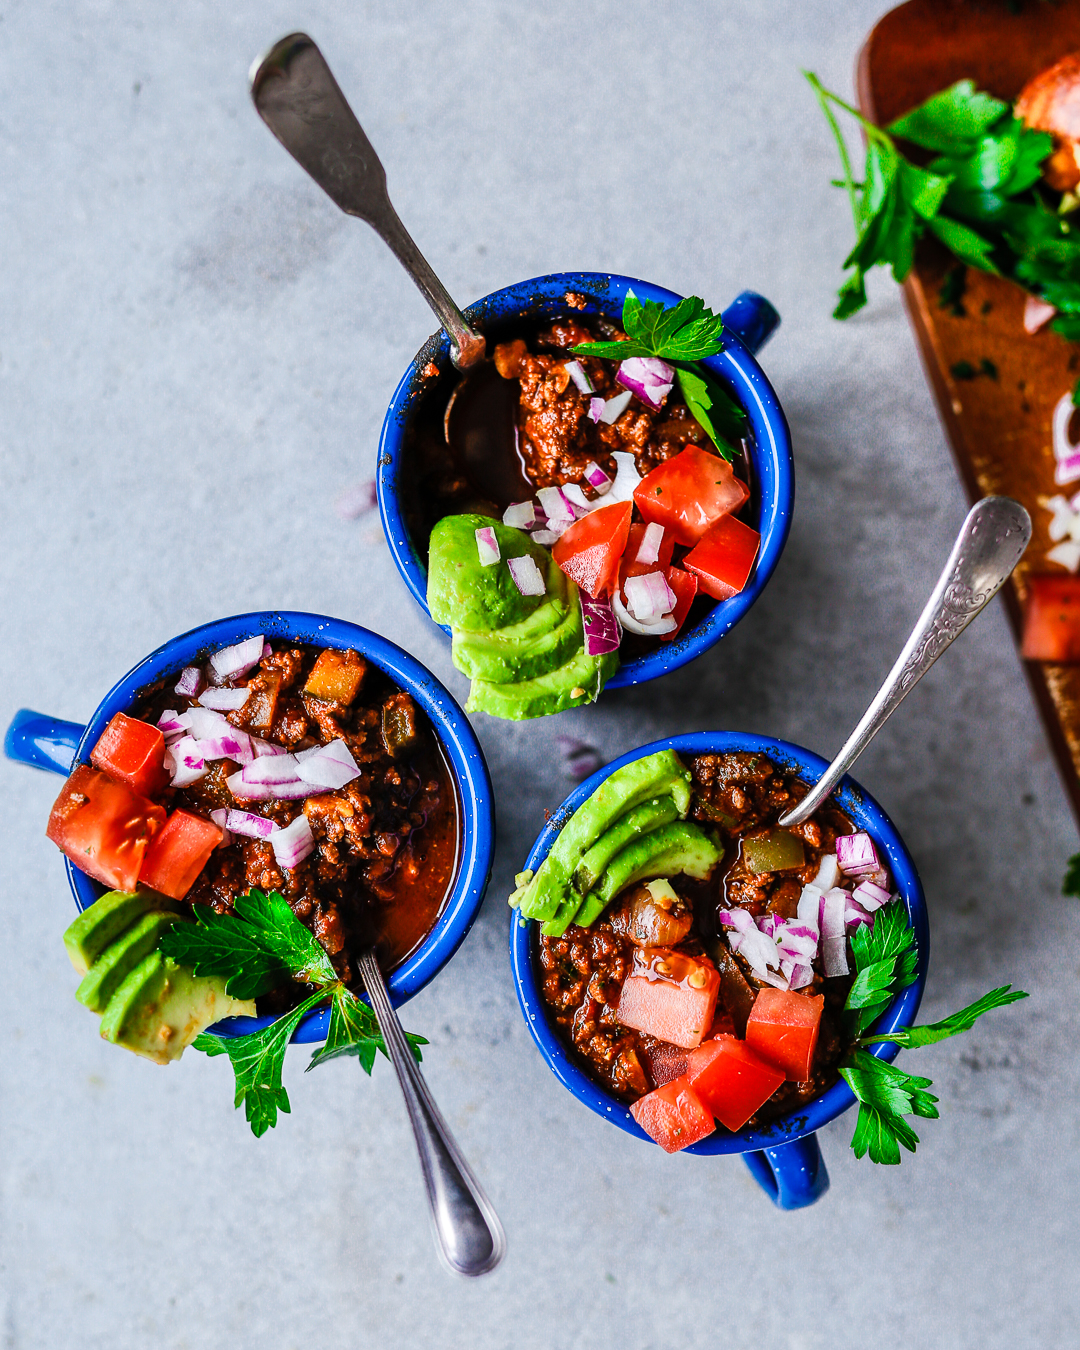 Paleo Chili Con Carne Primal Gourmet Whole 30 Recipe Ideas Summer Tailgating